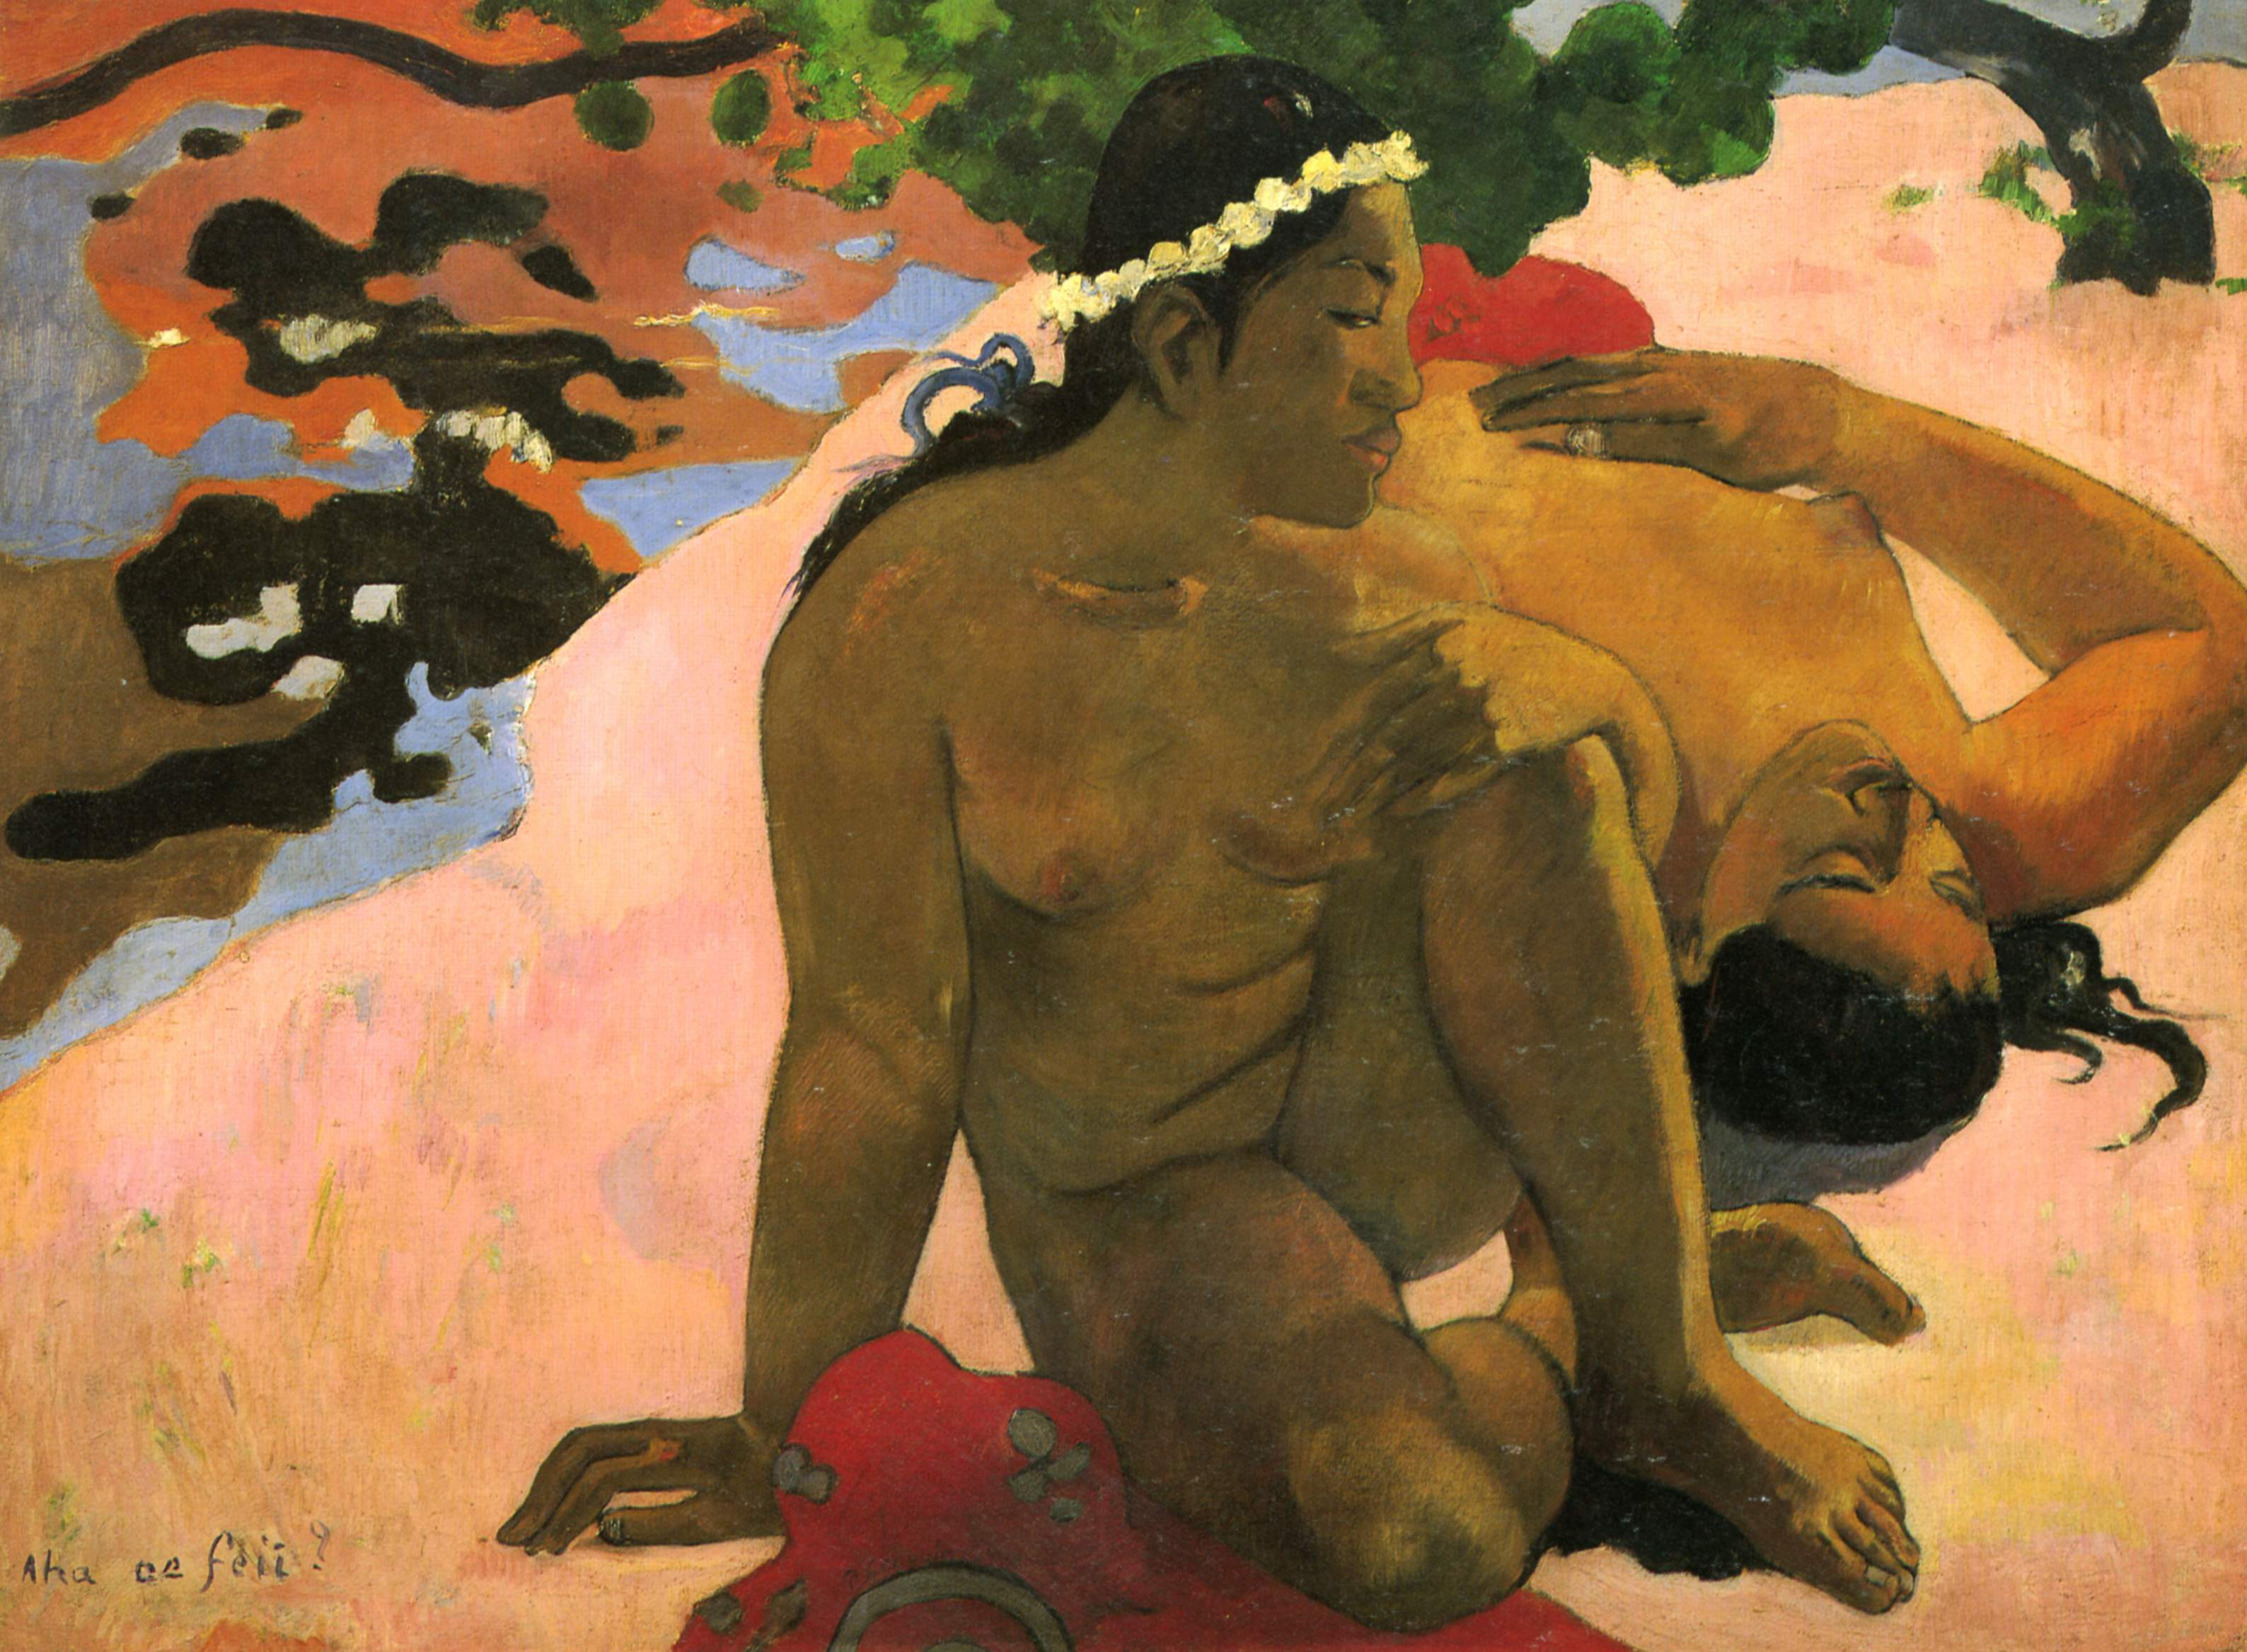 Exhibition 'Icons of modern art, the Shchukin collection'